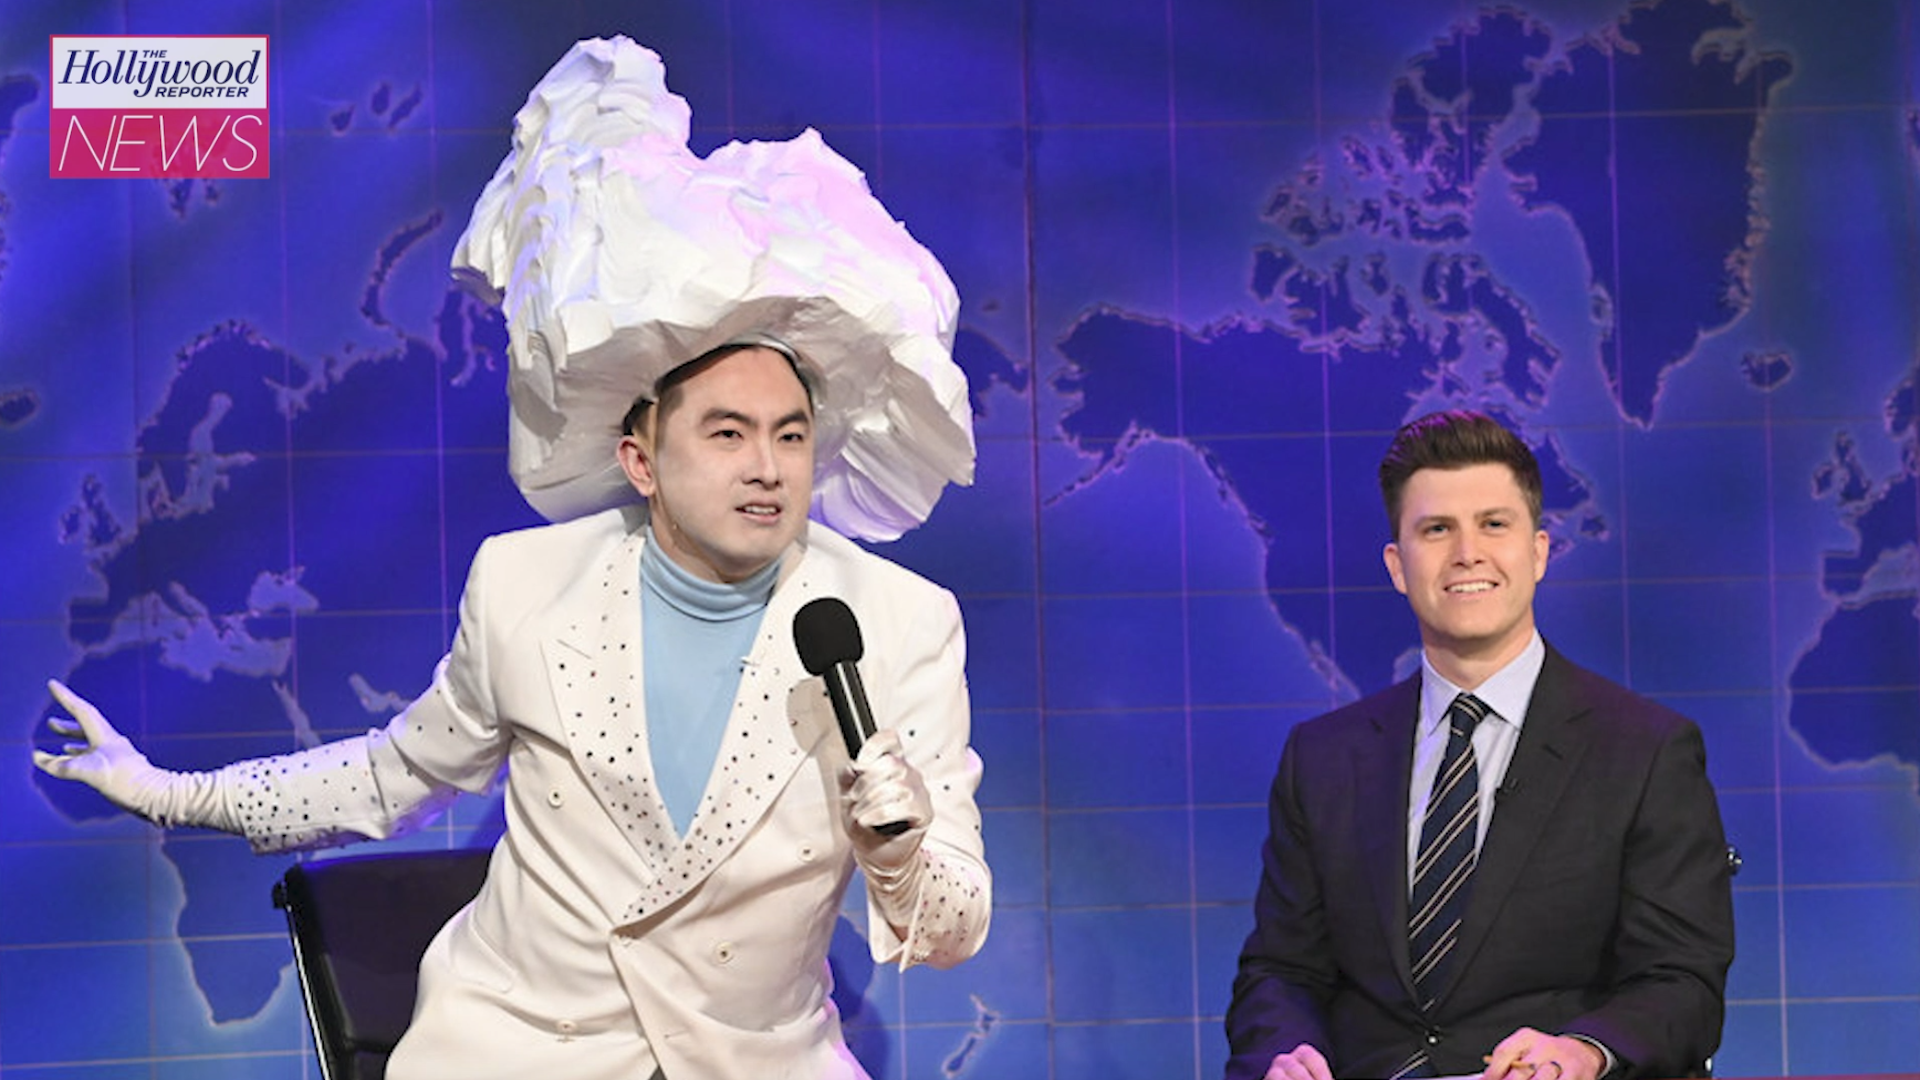 'SNL': Bowen Yang's Sketch as the Iceberg That Sunk the Titanic Steals the Show | THR News